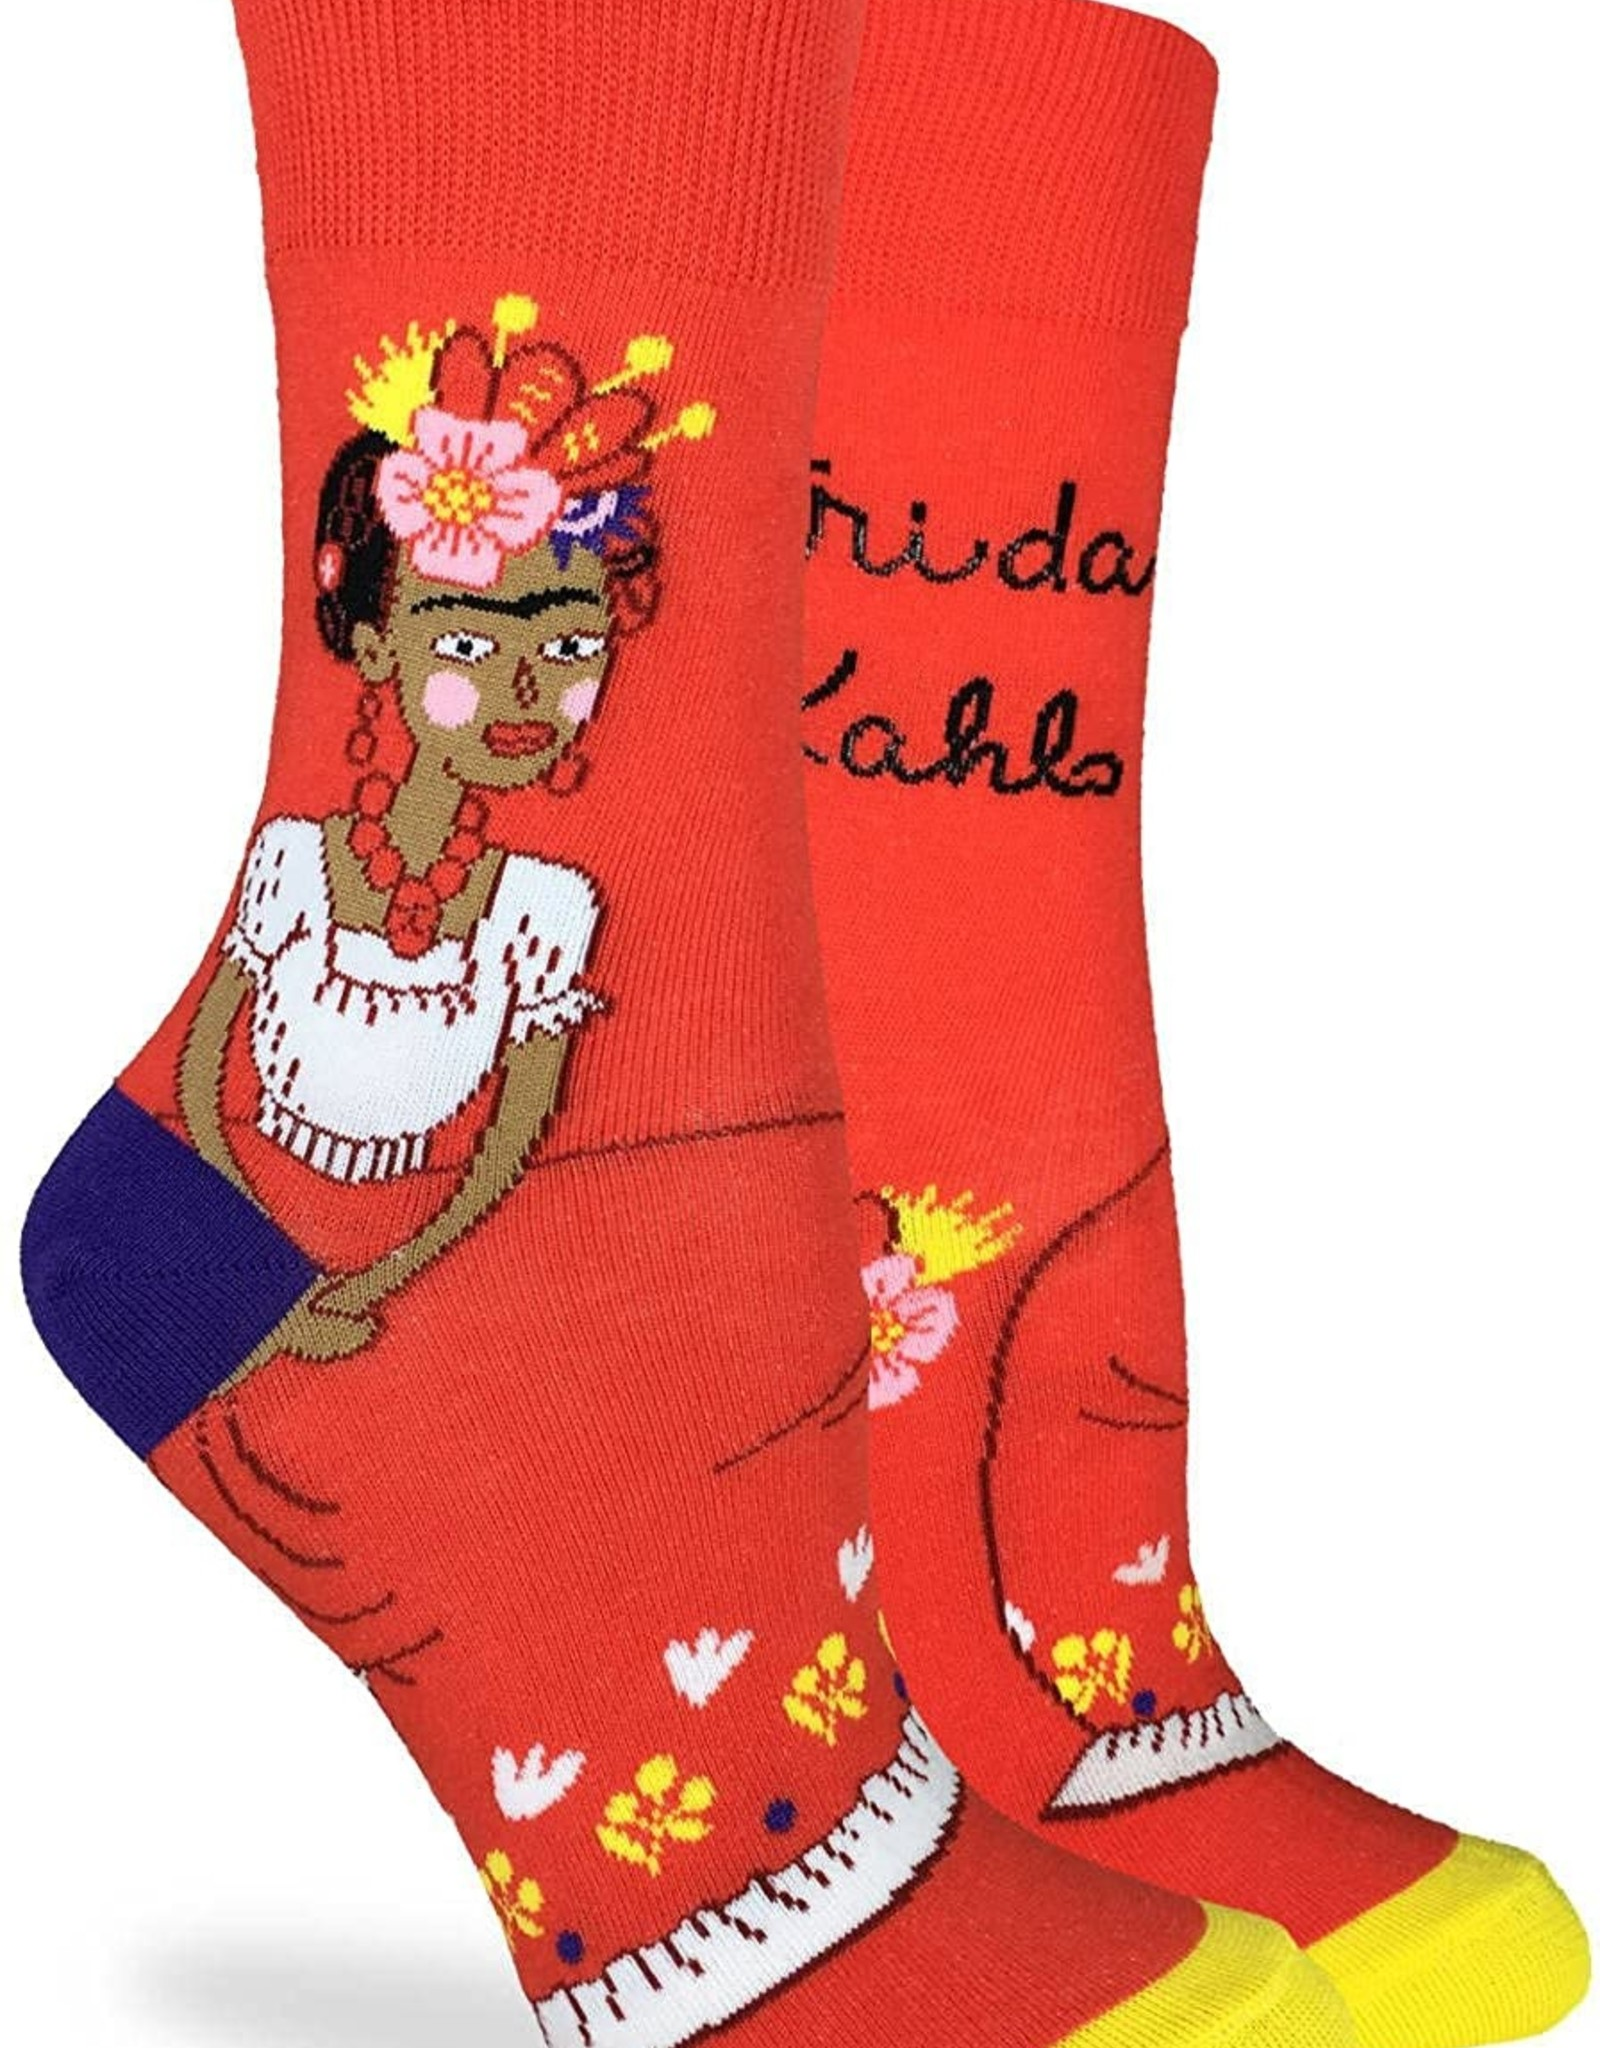 Good Luck Sock Women's Frida Kahlo Socks